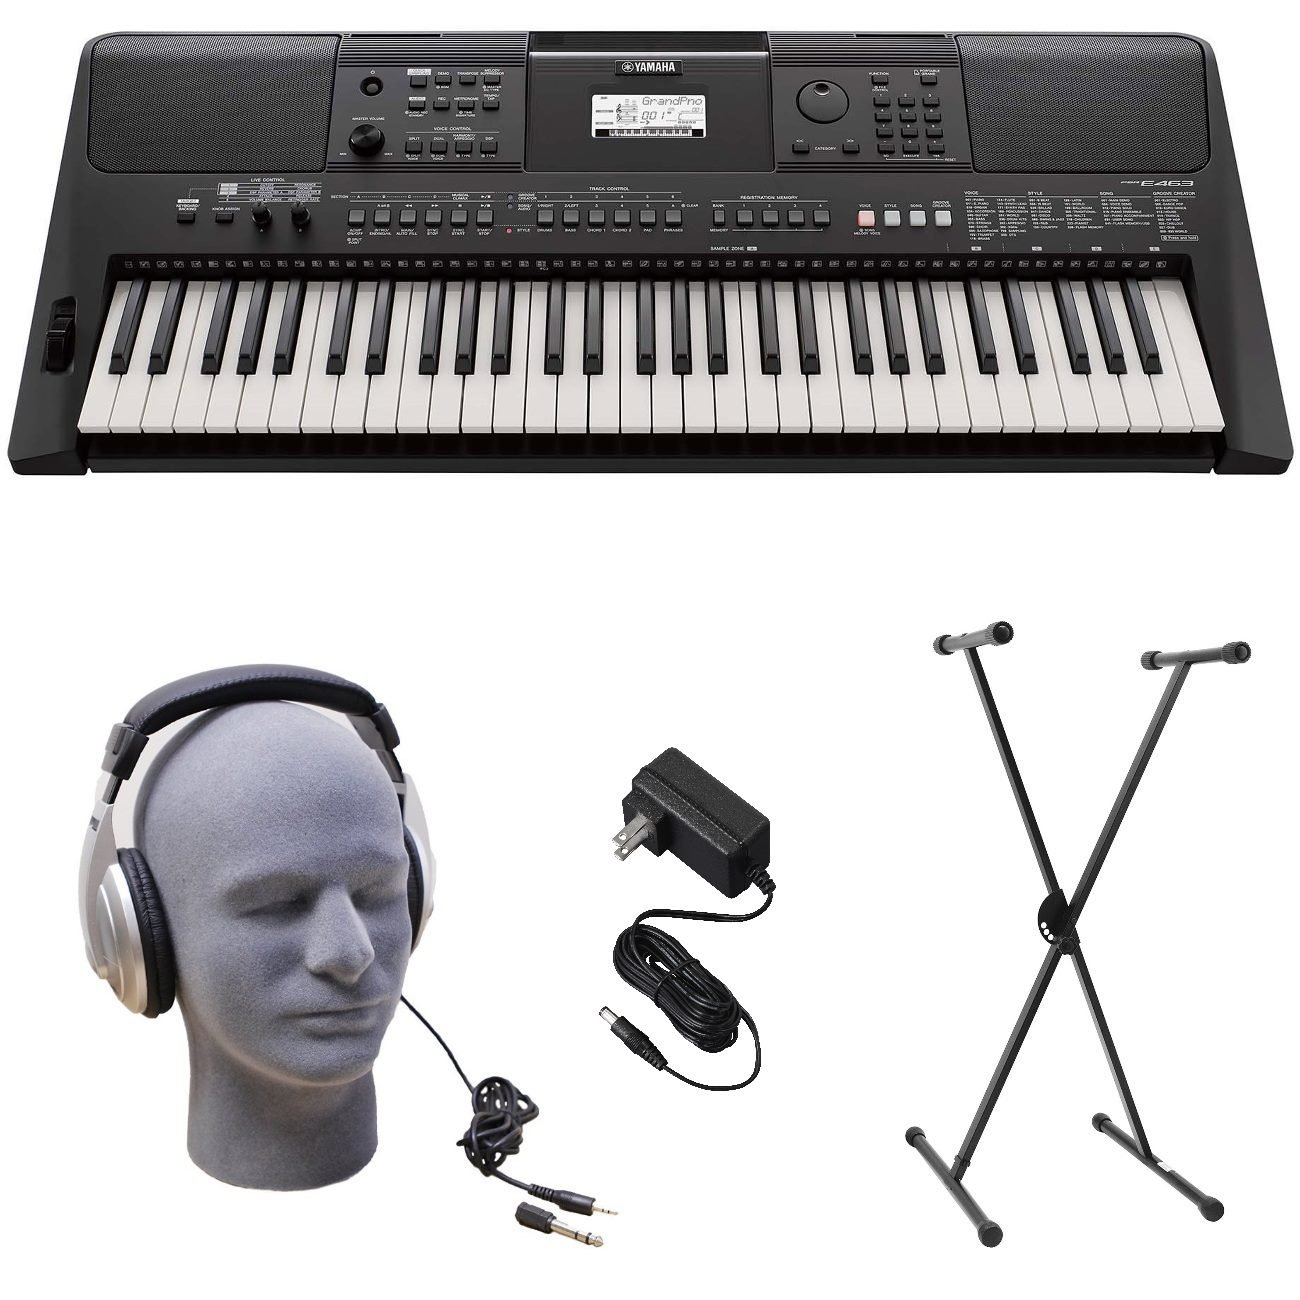 Yamaha PSR-E463 PKS Premium Keyboard Pack with Power Supply, X-Style Stand, and Headphones by YAMAHA